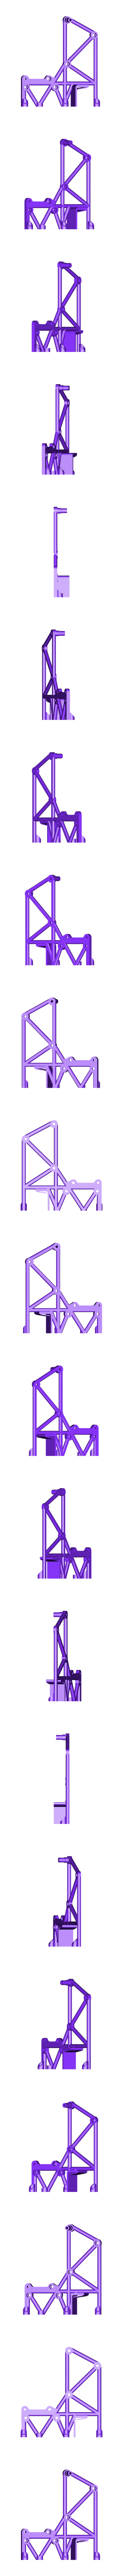 Frame01-split01.stl Download free STL file Fully printable Monster Truck • 3D printer design, tahustvedt